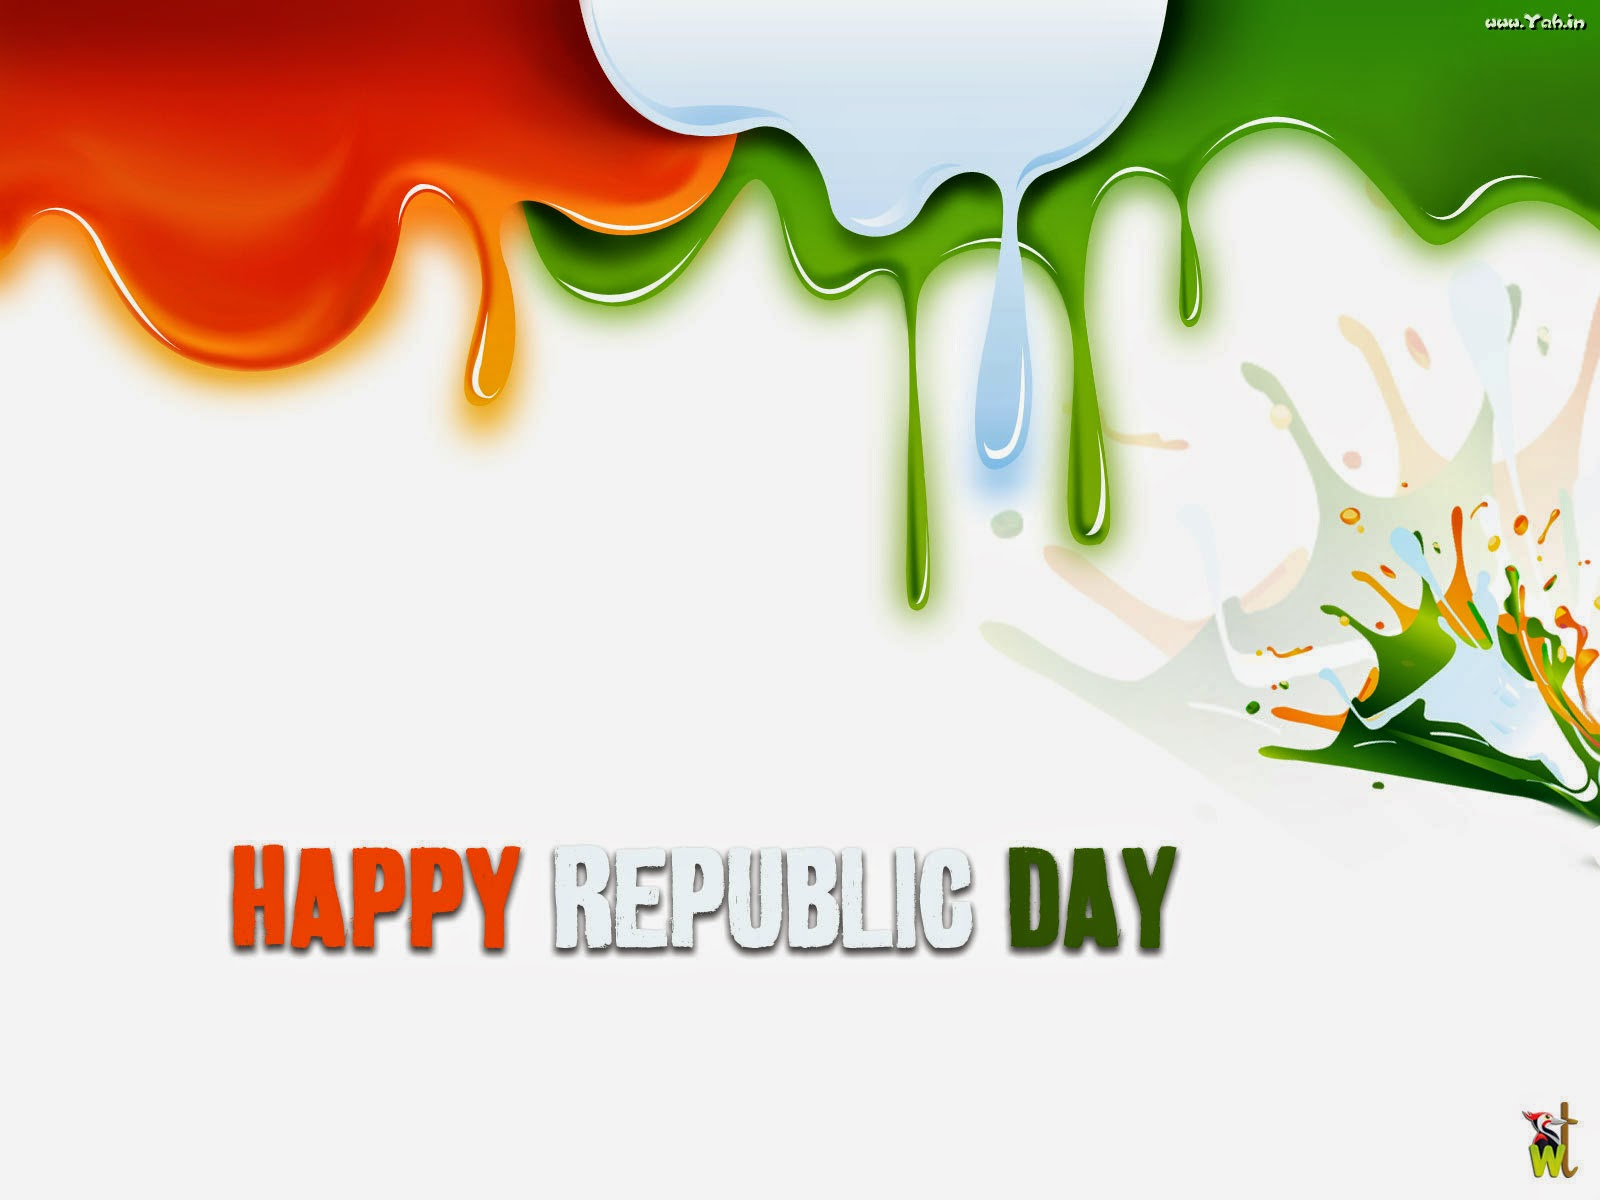 Happy Republic Day 2020 Images Hd Pics Download Photos For 26th January 2020 Happy Republic Day 2020 Wishes Quotes Wallpapers Live Information